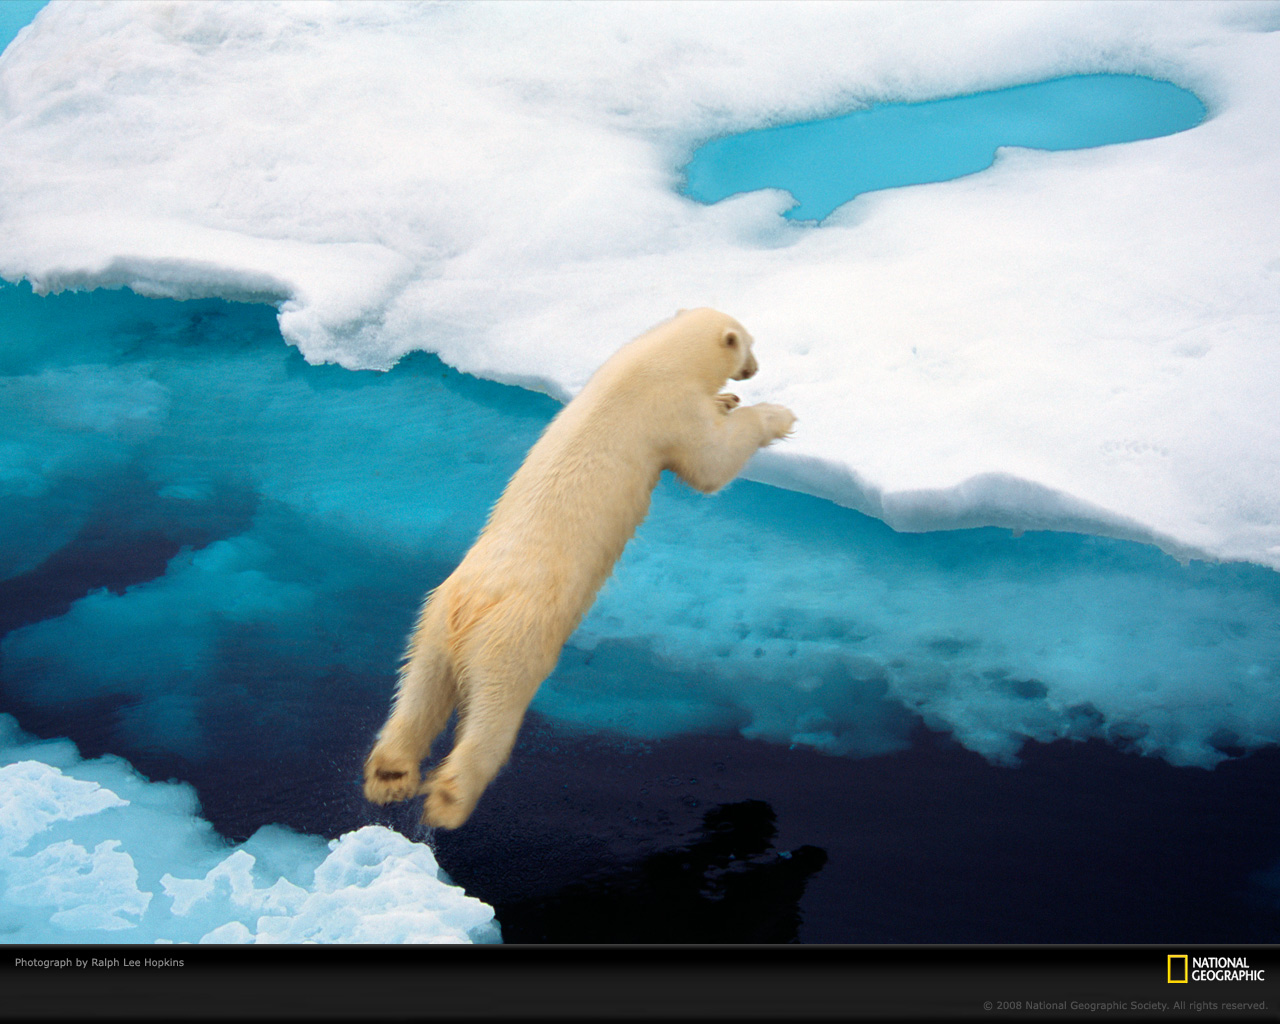 http://2.bp.blogspot.com/-Emkg50onqp0/T40G1B1CpcI/AAAAAAAABf0/fIgU-jq3pzE/s1600/blue-jumping-polar-bear-national-geographic-desktop-background.jpg